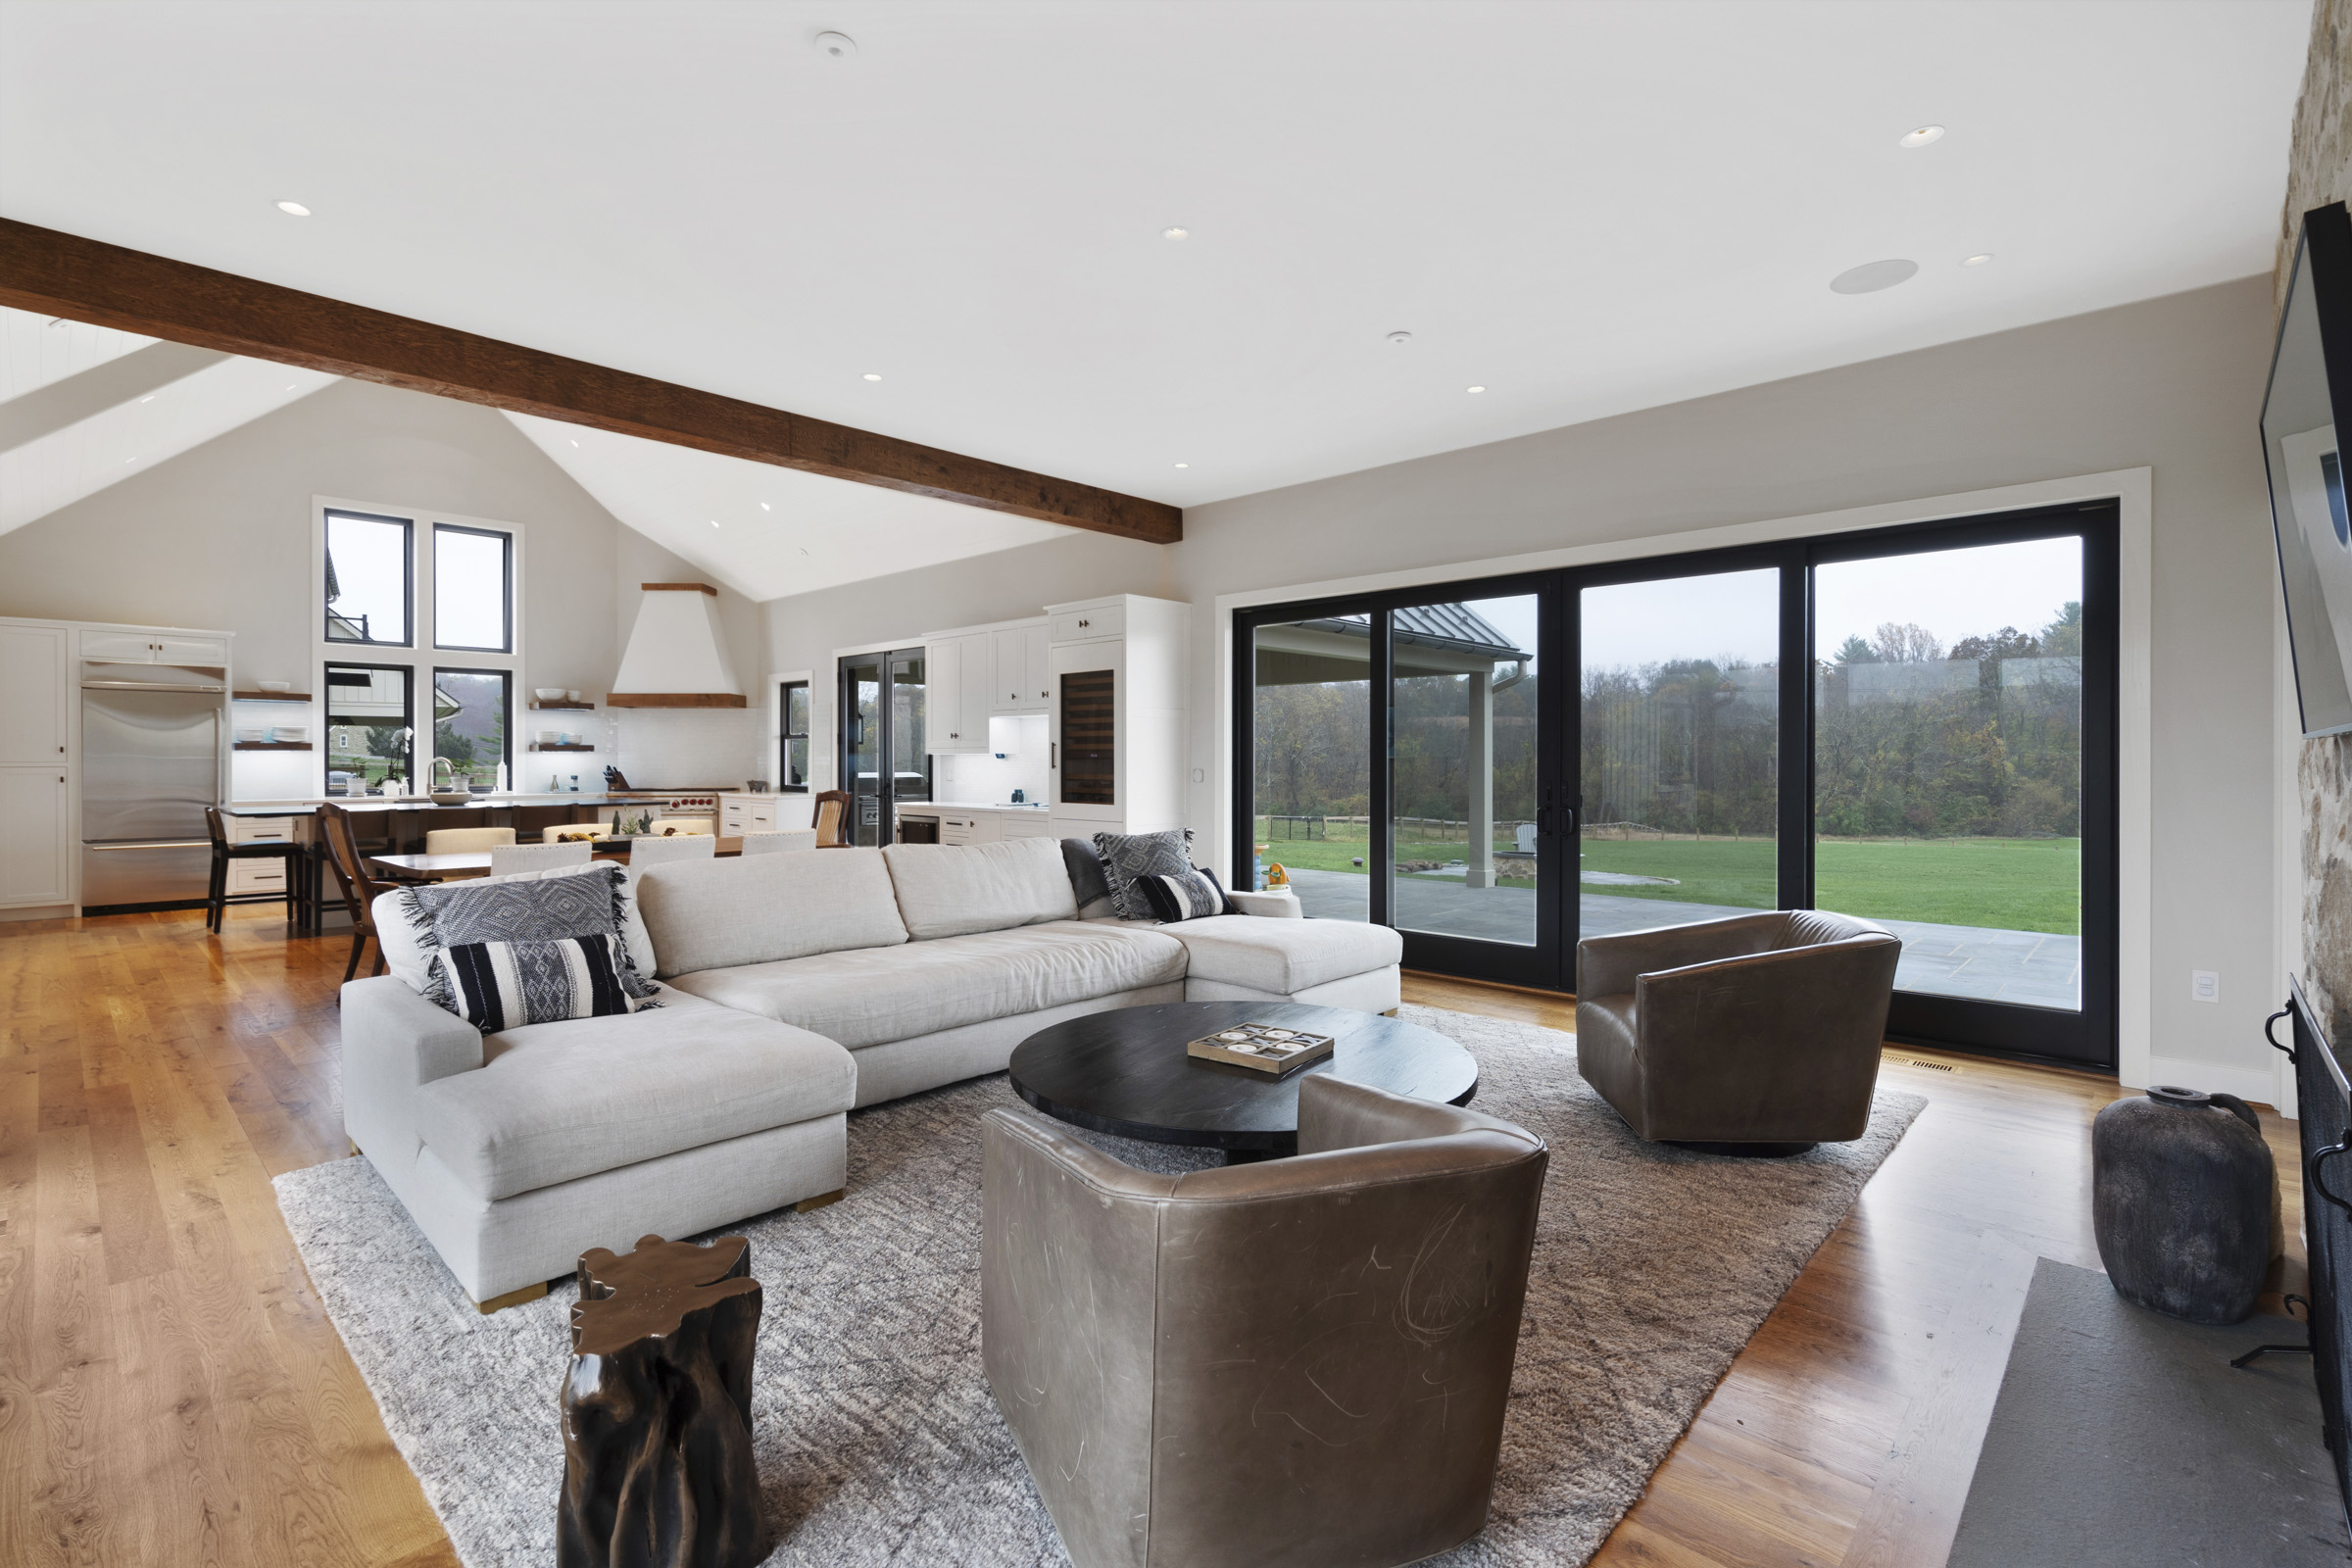 Living room space with natural light and led spots